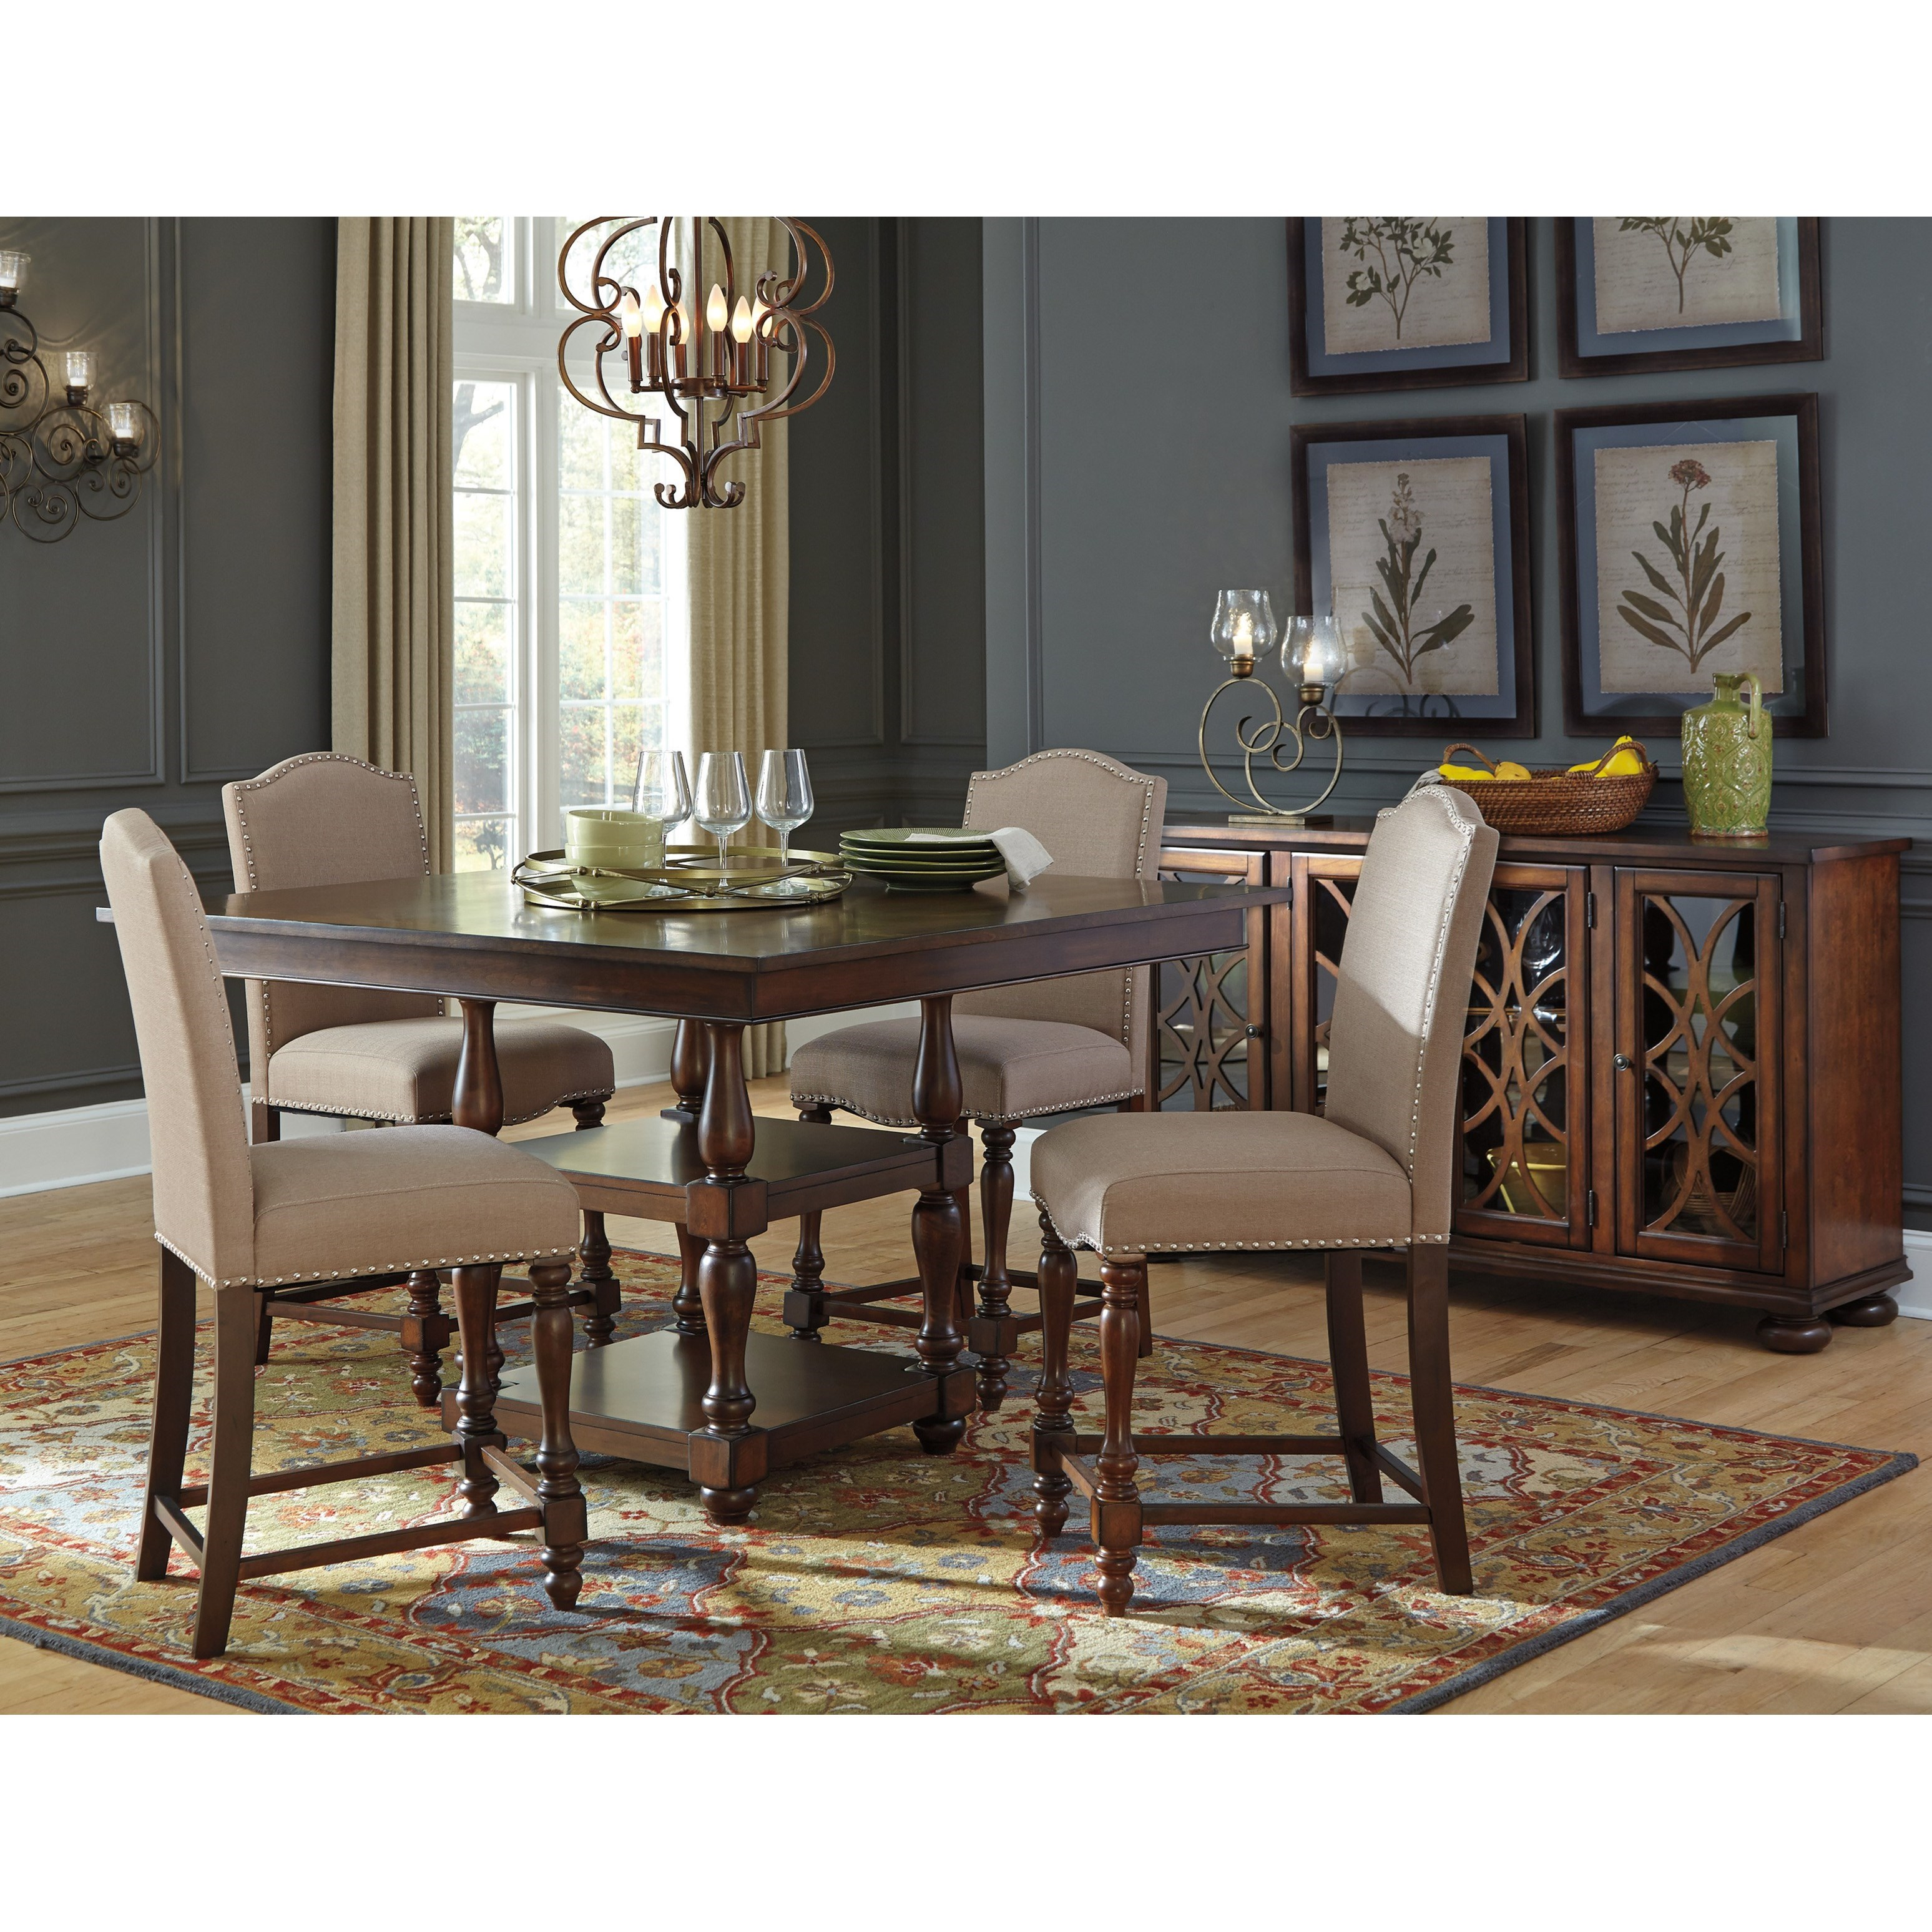 Signature design by ashley baxenburg casual dining room for Casual dining room